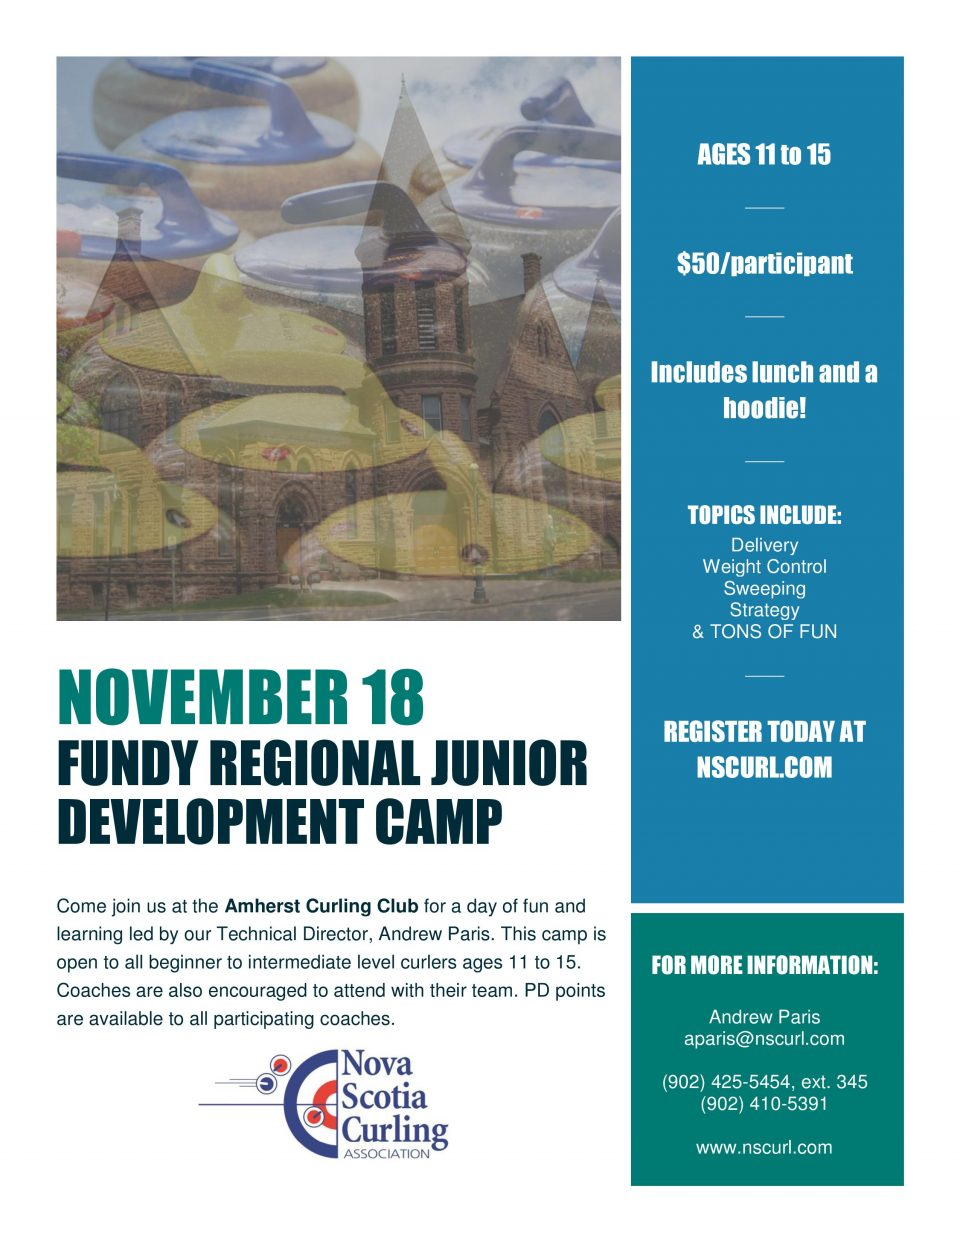 Junior Development Camp in Amherst @ Amherst Curling Club | Amherst | Nova Scotia | Canada